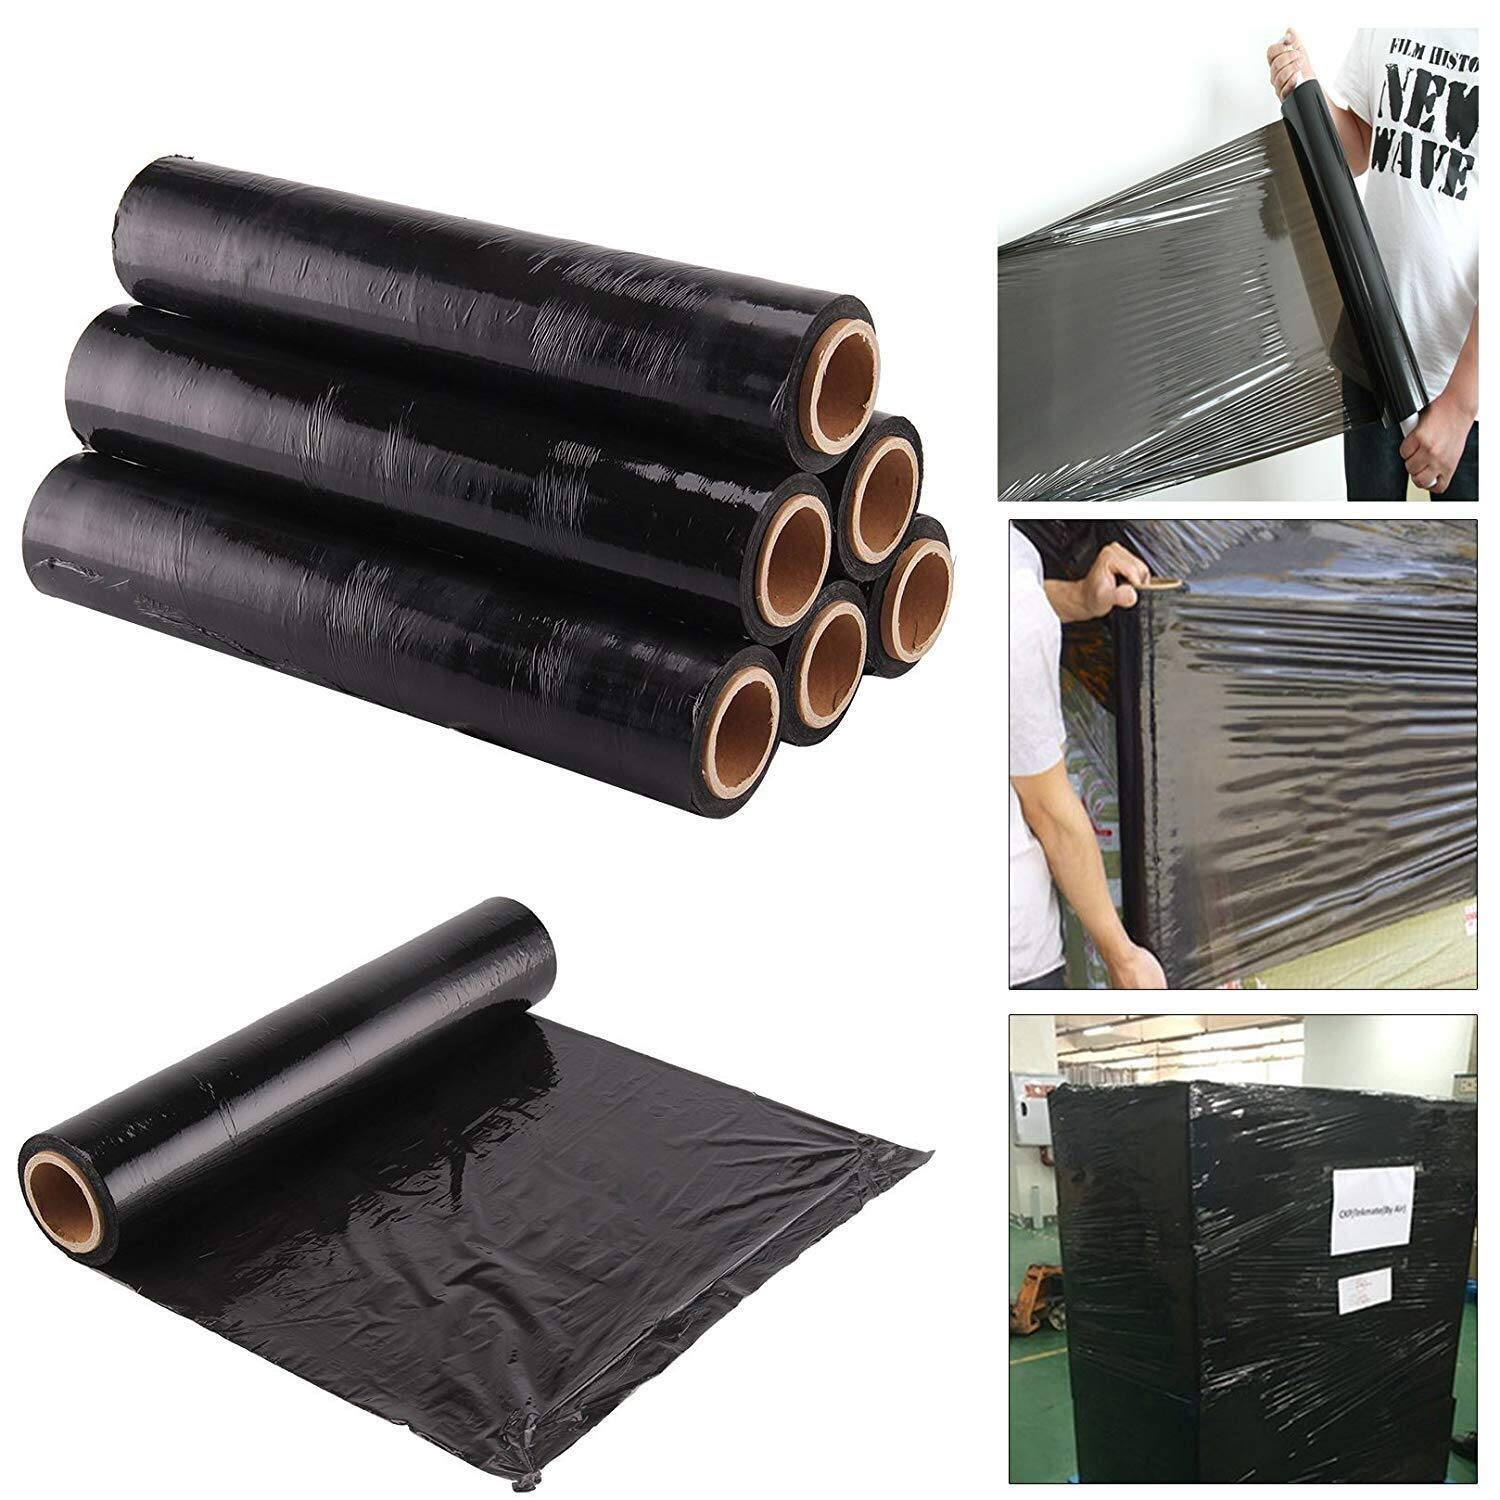 YXNZ PE Industrial Packaging Film,500 Mm X 350 M Extended Core Pallet Stretch Shrink Wrap,Heavy Duty Strong Pallet - Black Tint (Pack of 6) by YXNZ